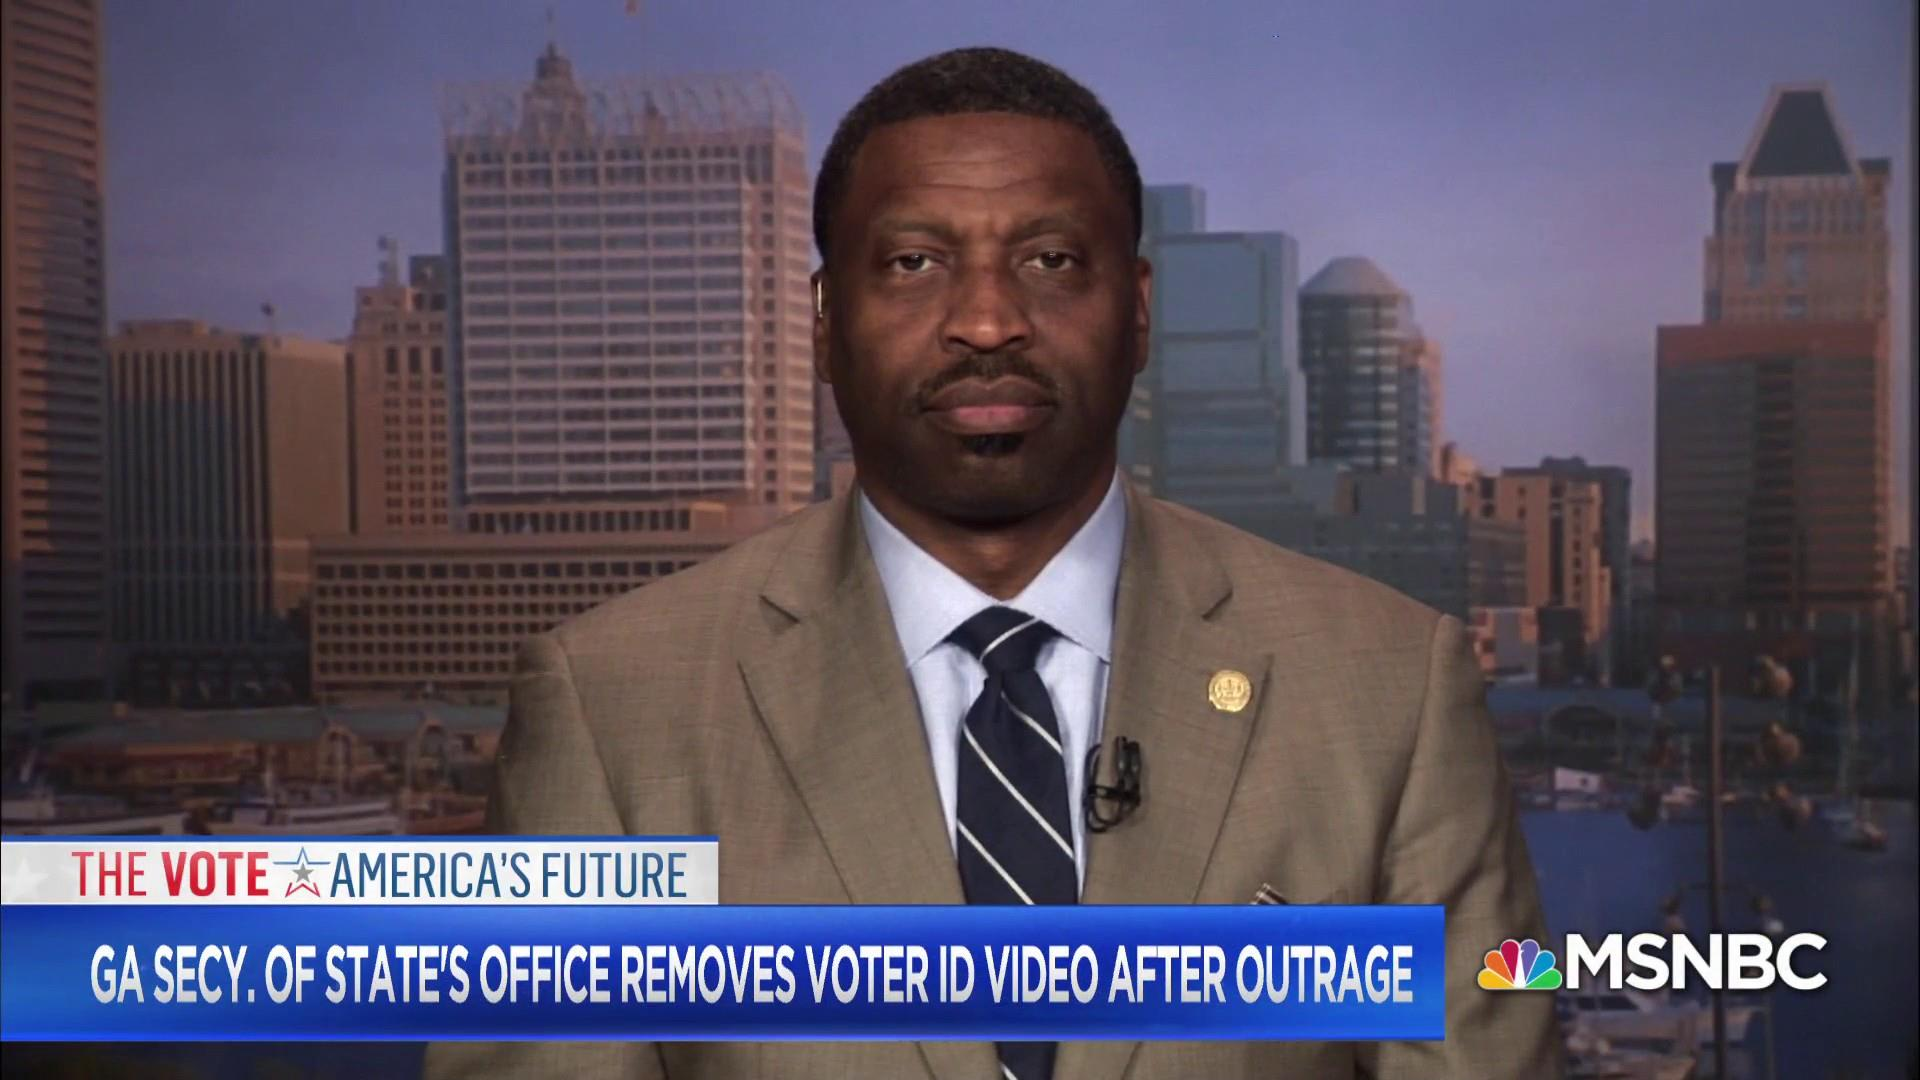 NAACP President: 'This is an effort to subvert Democracy'